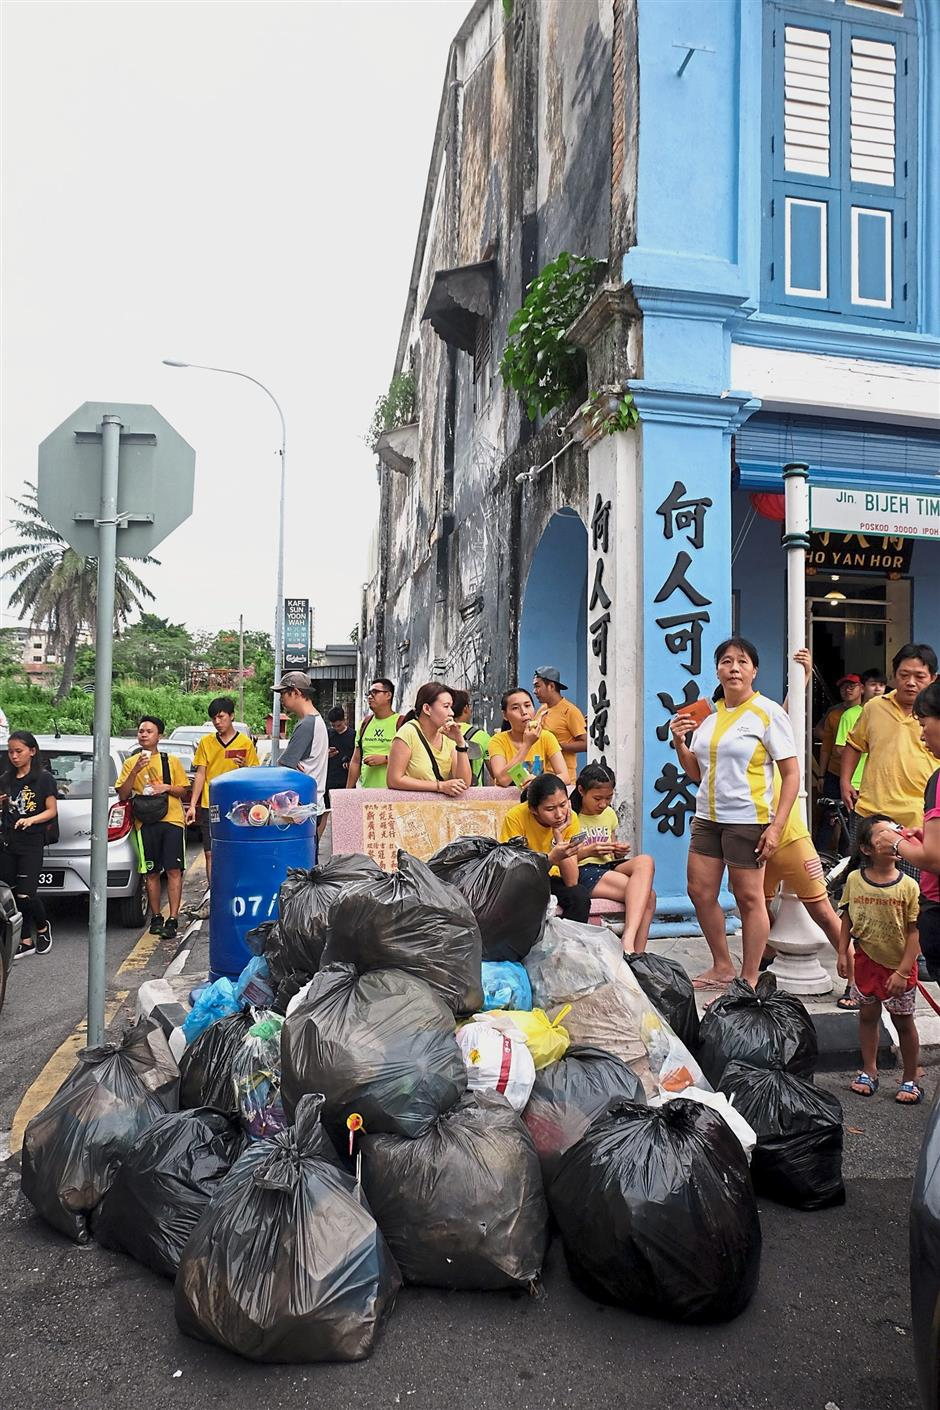 The JOGJap Bersihkan Ipoh weekend outing yielded an abundant return, with over 30 bags of trash collected in less than 90 minutes.